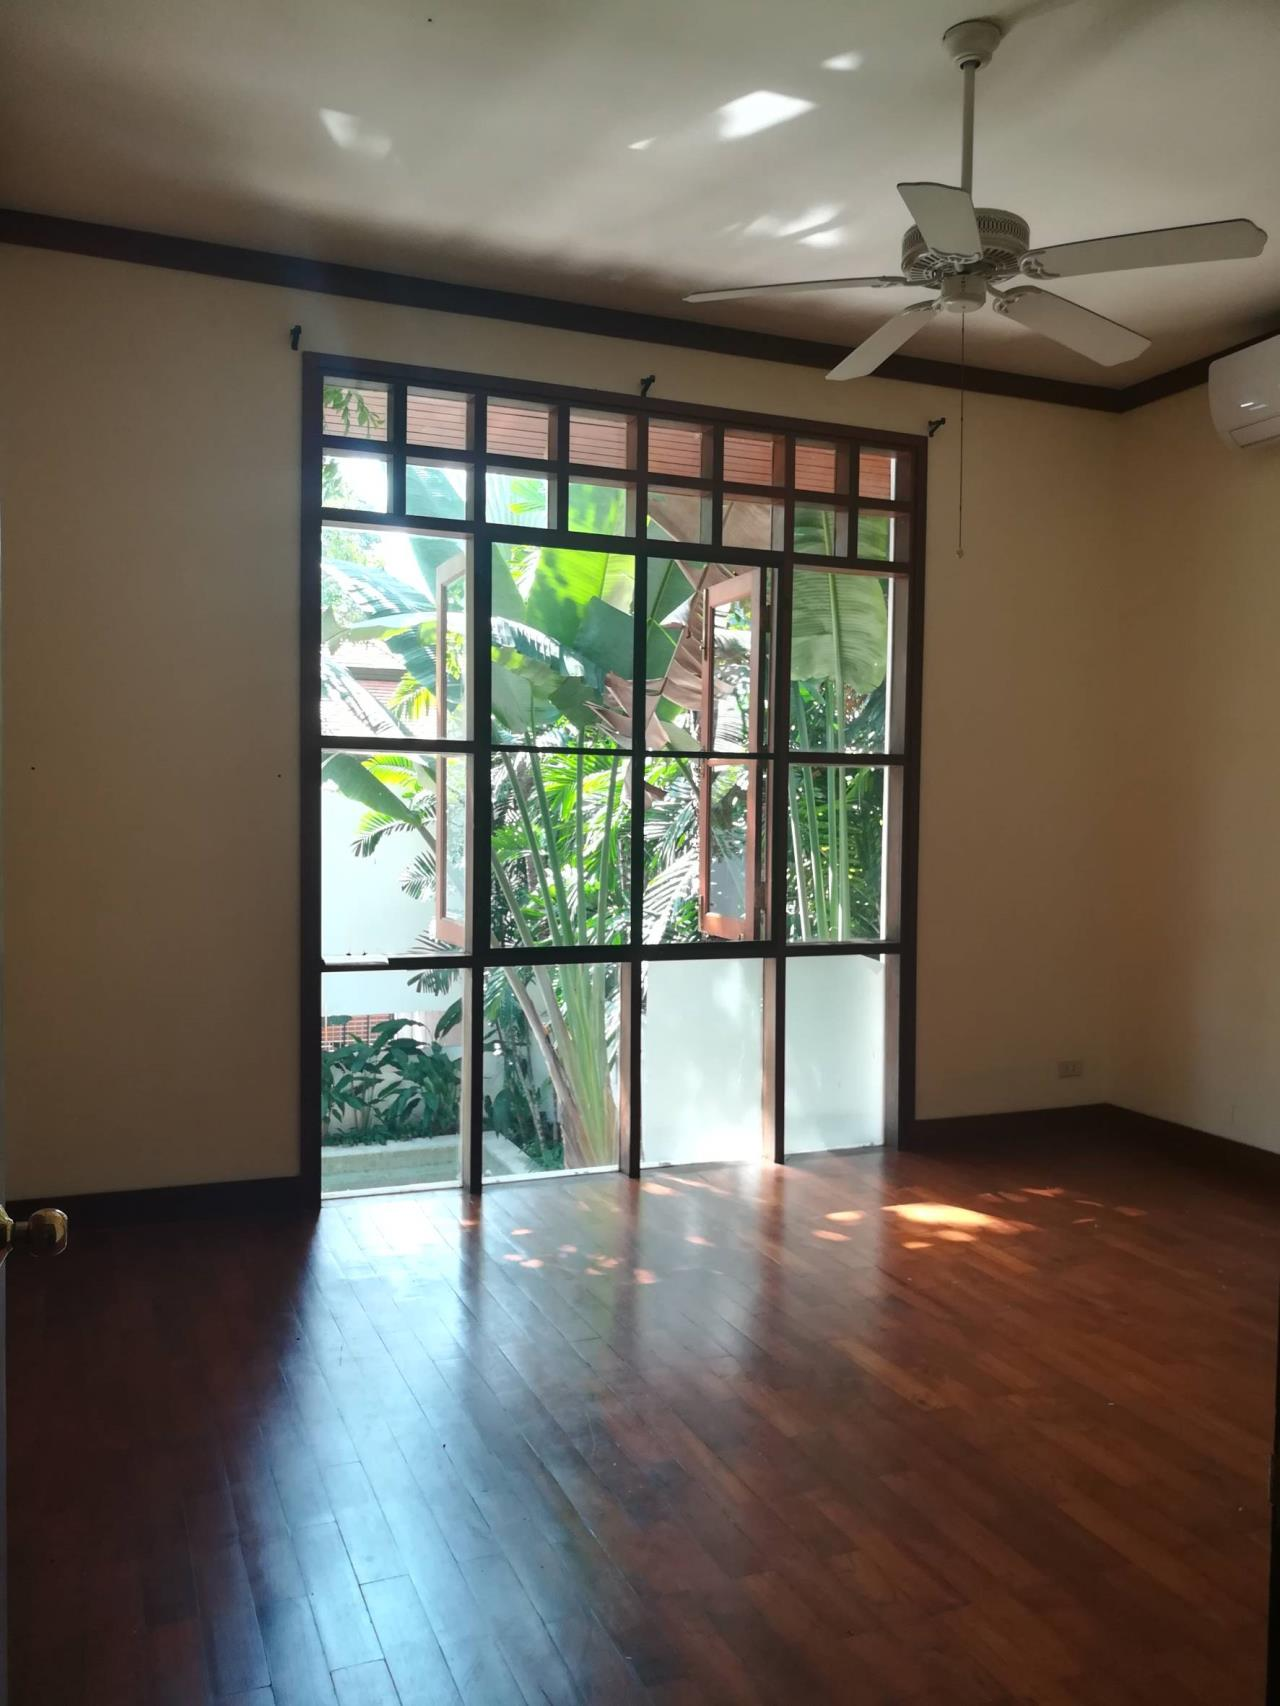 Professional One Service Agency's Detached house with private pool near BTS Asoke 4